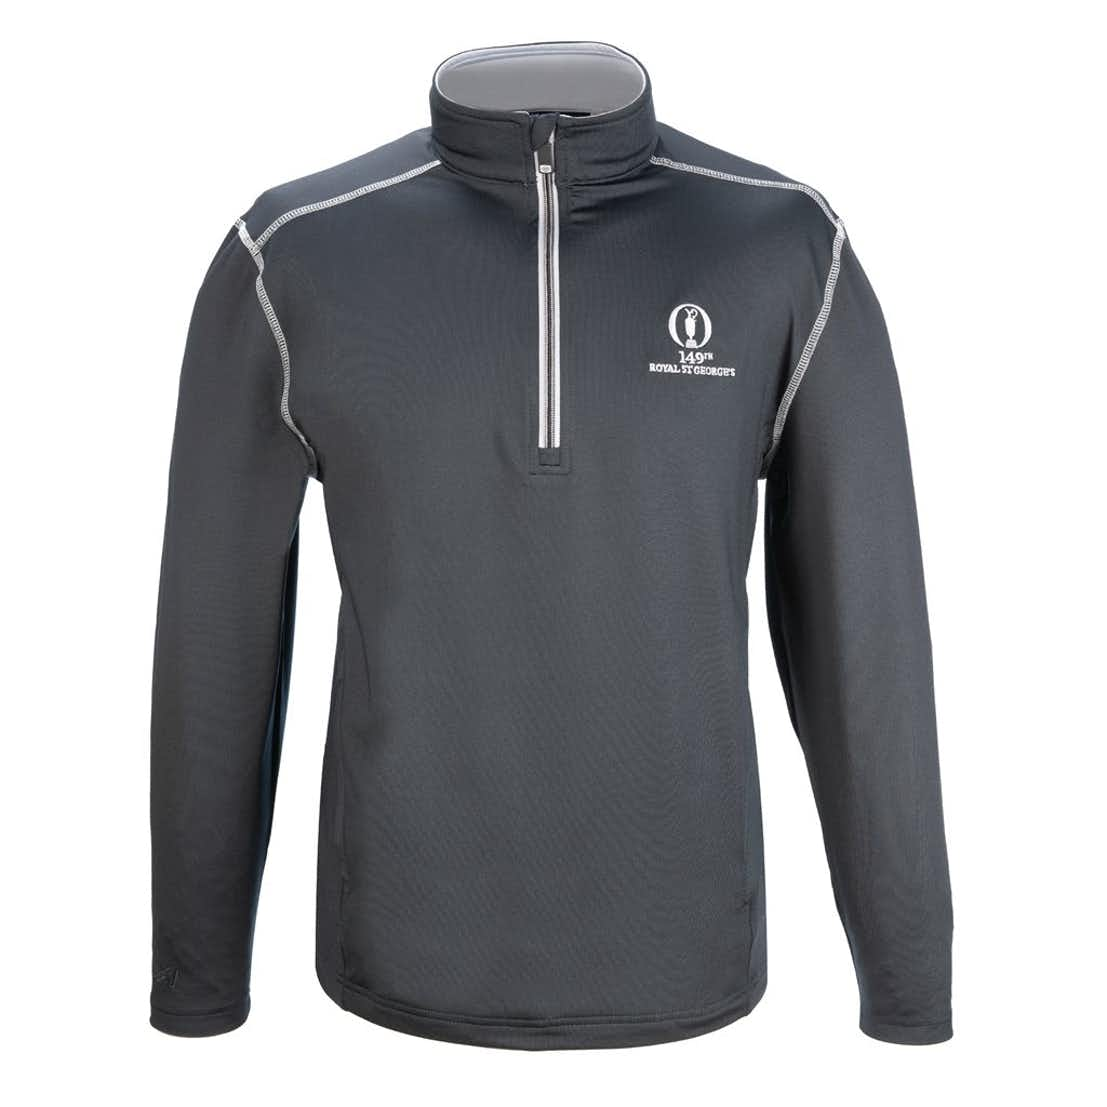 149th Royal St George's 1/4 Zip Layer - Grey